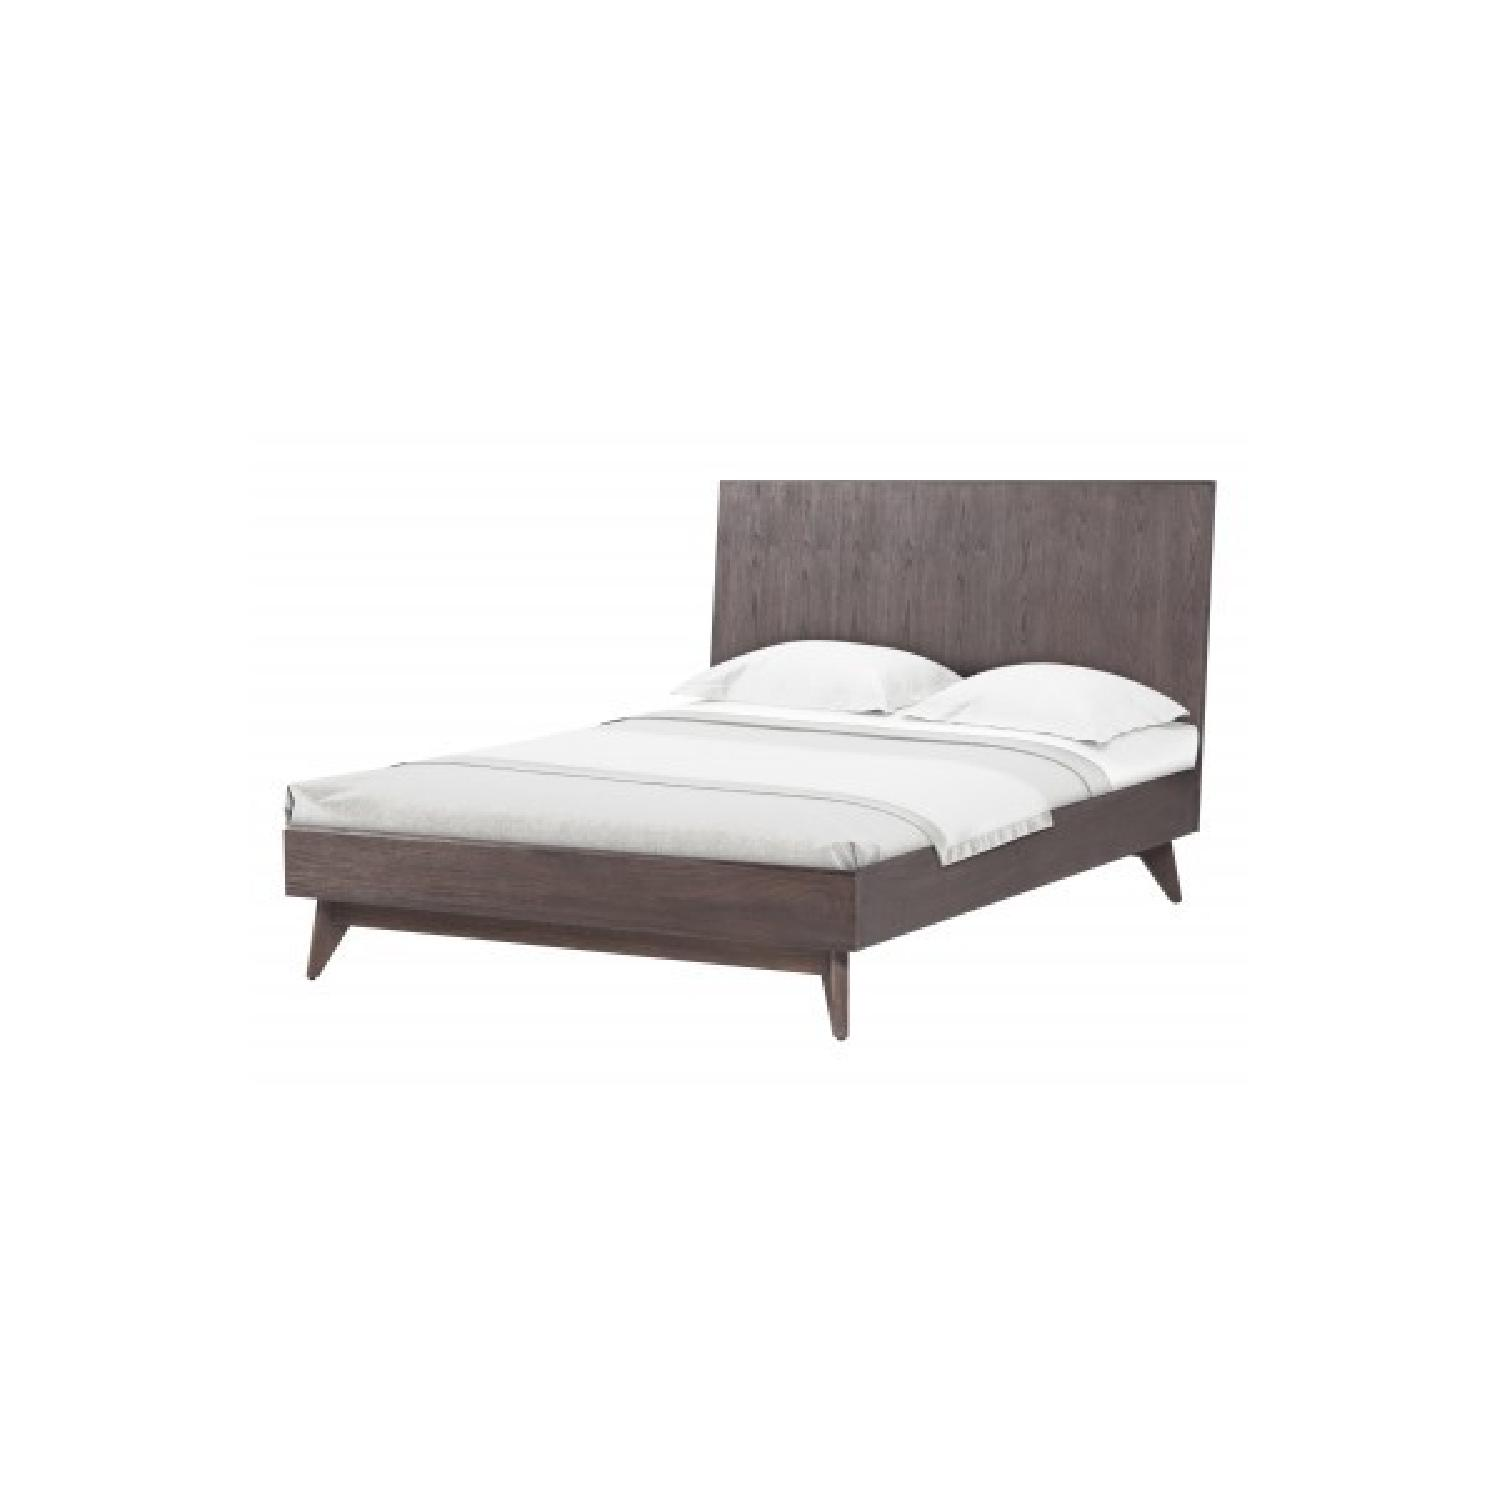 TOV Furniture Loft Wooden Queen Bed